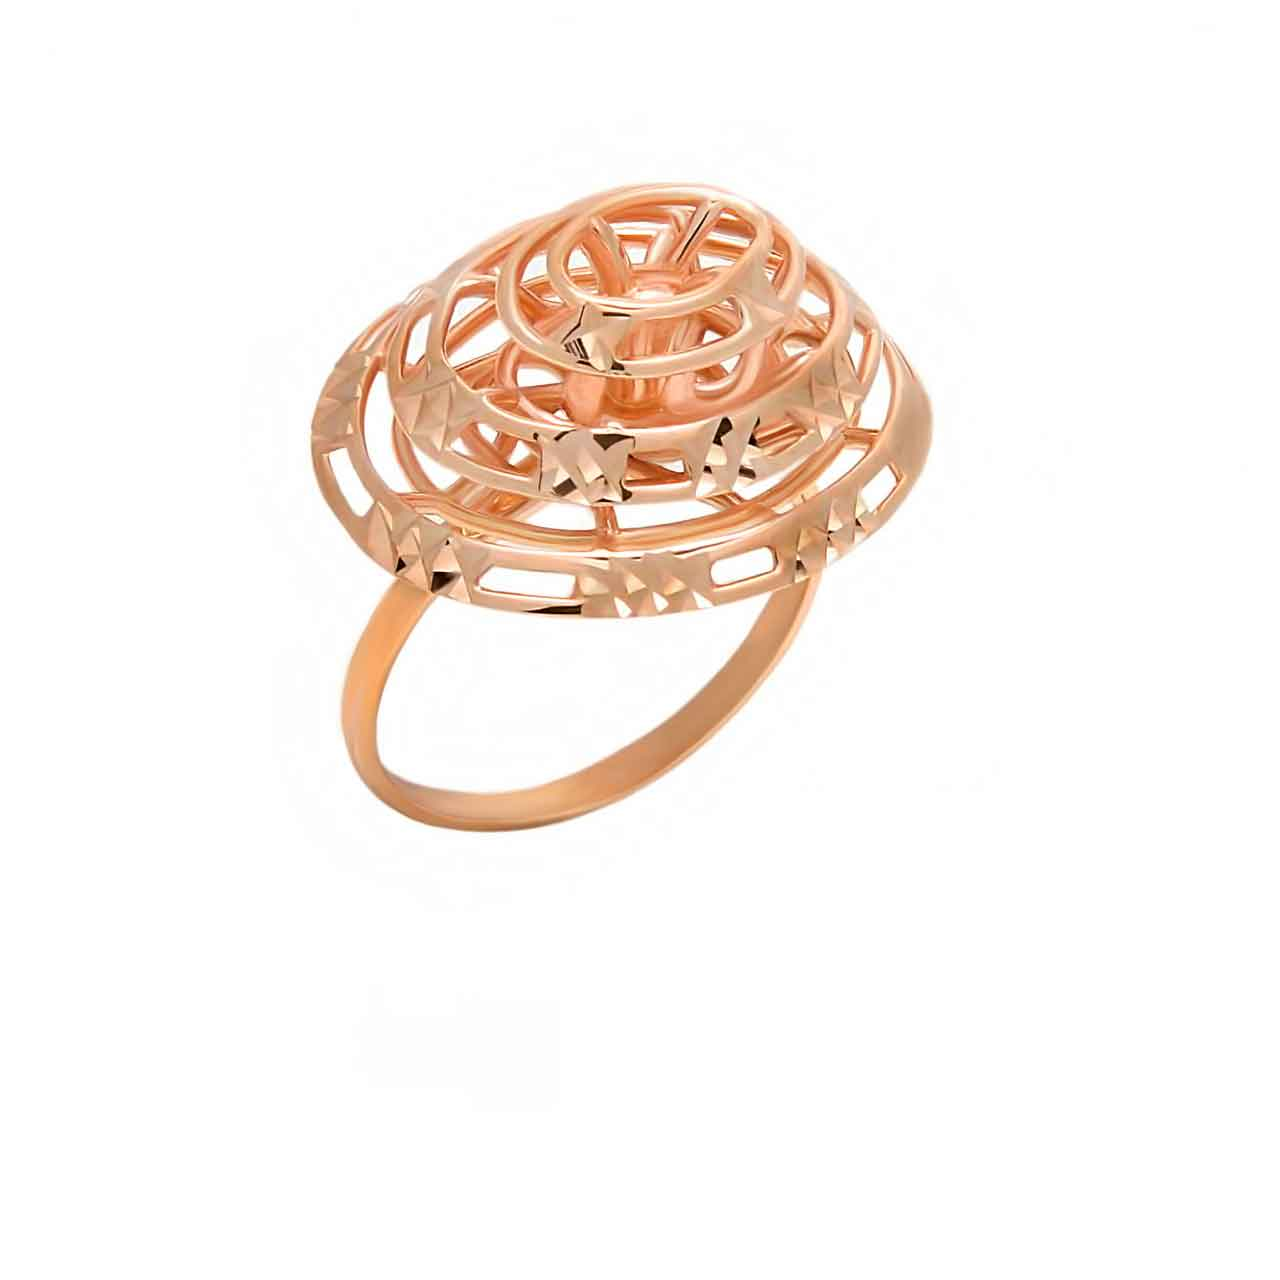 Designer rose gold ring 1